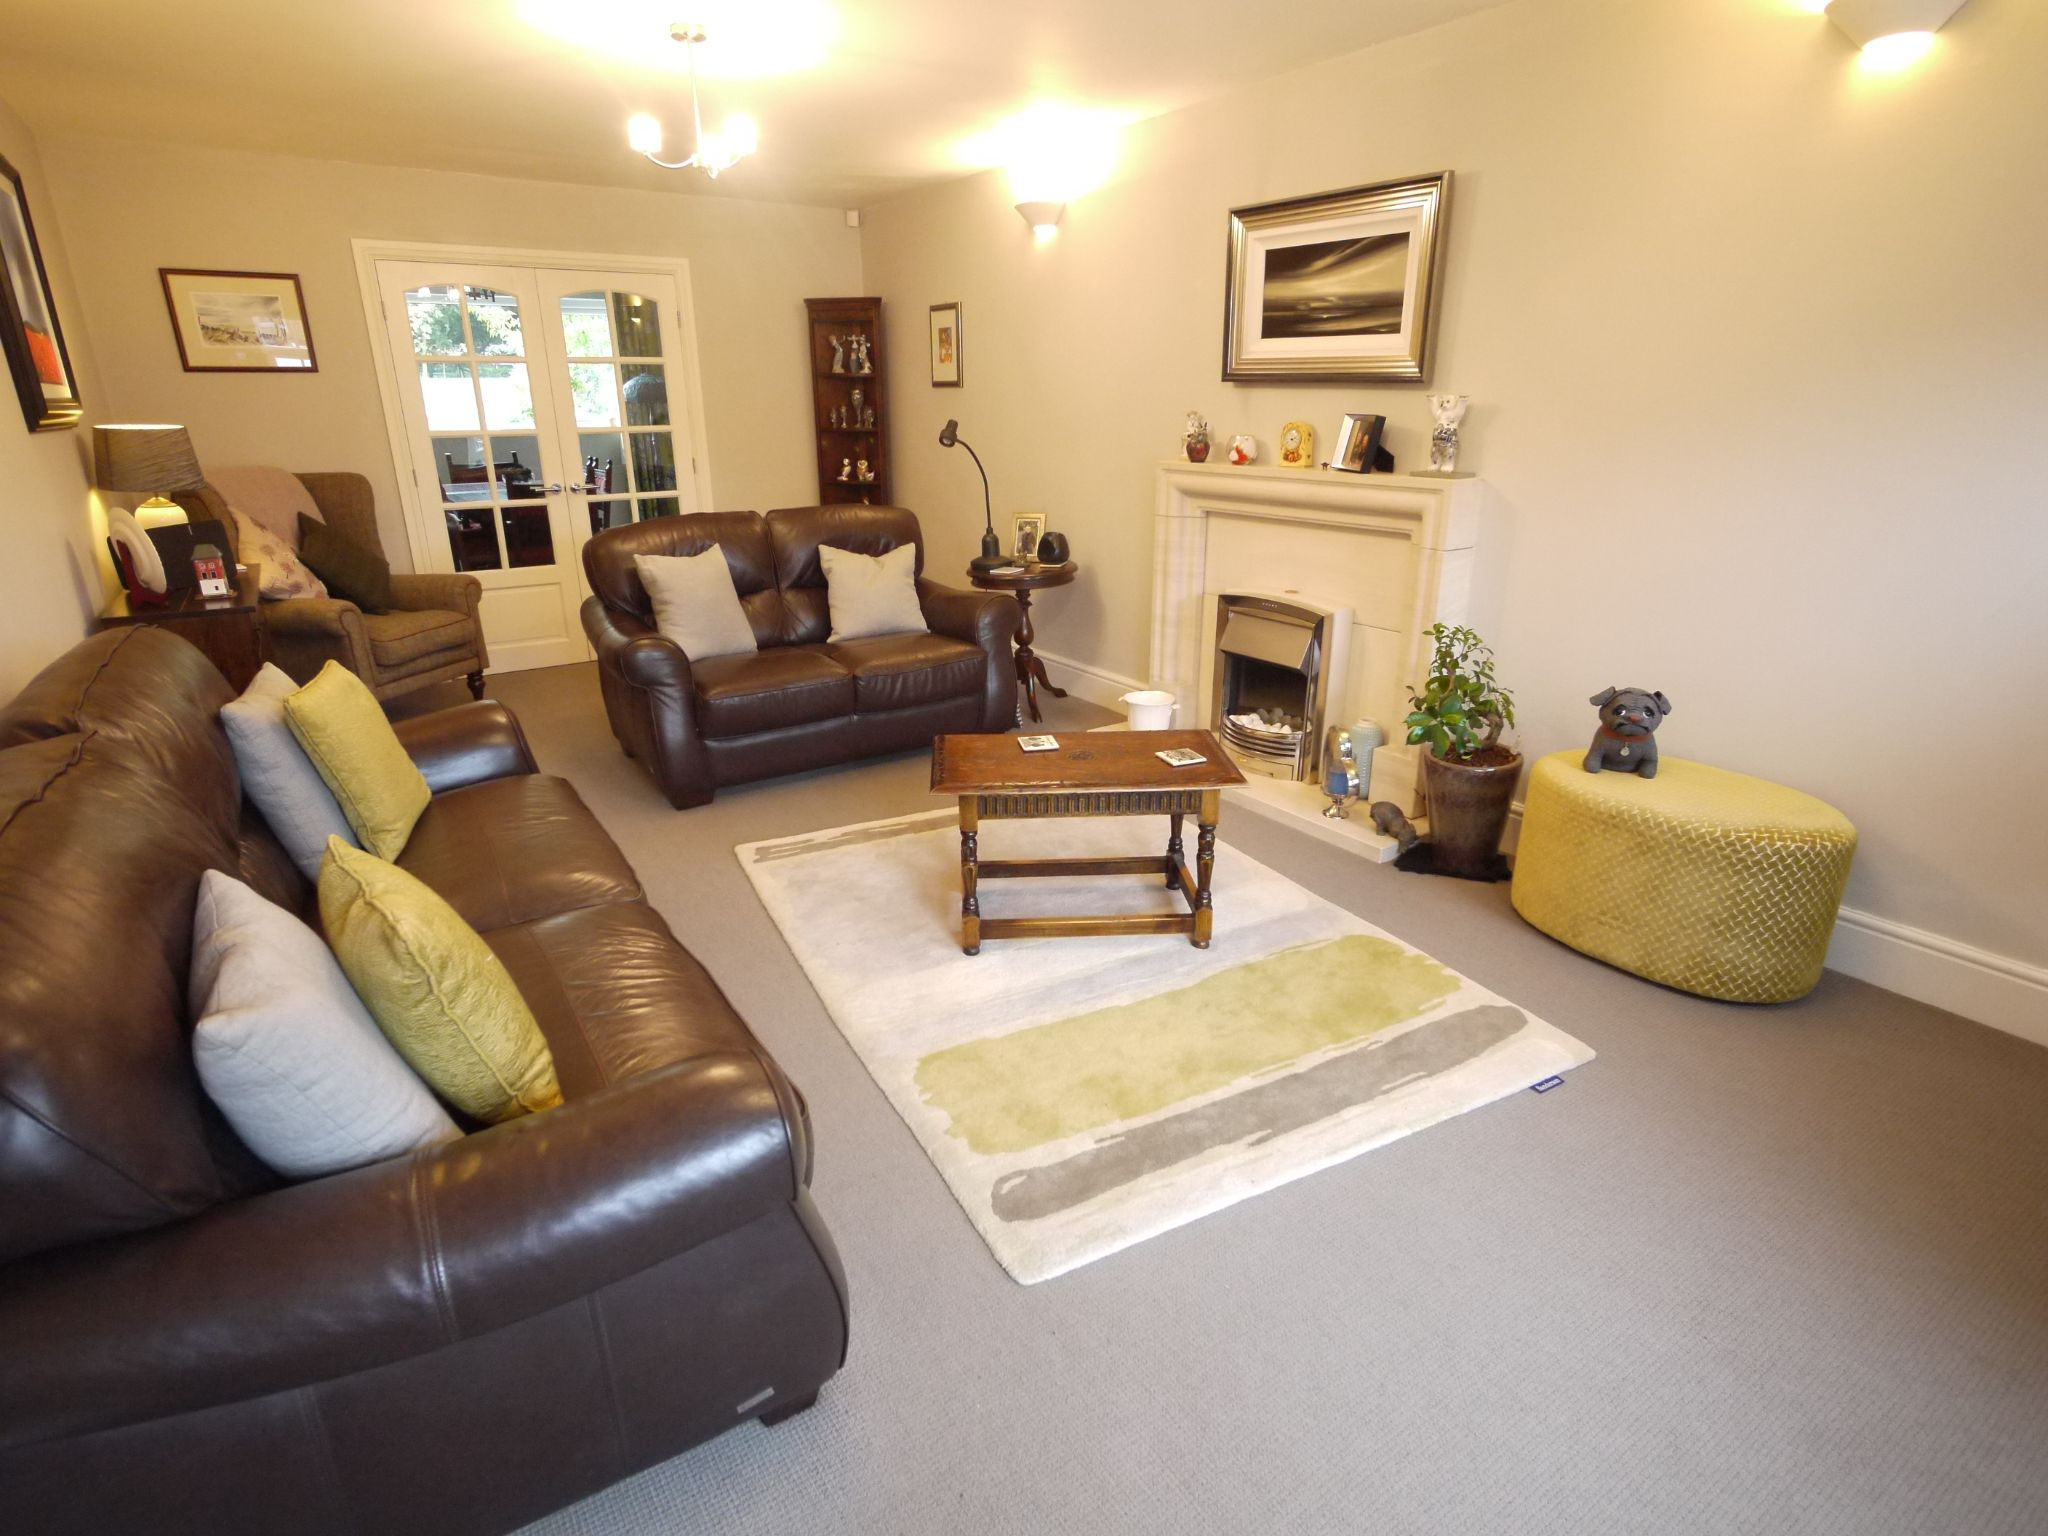 6 bedroom detached house SSTC in Halifax - Lounge.